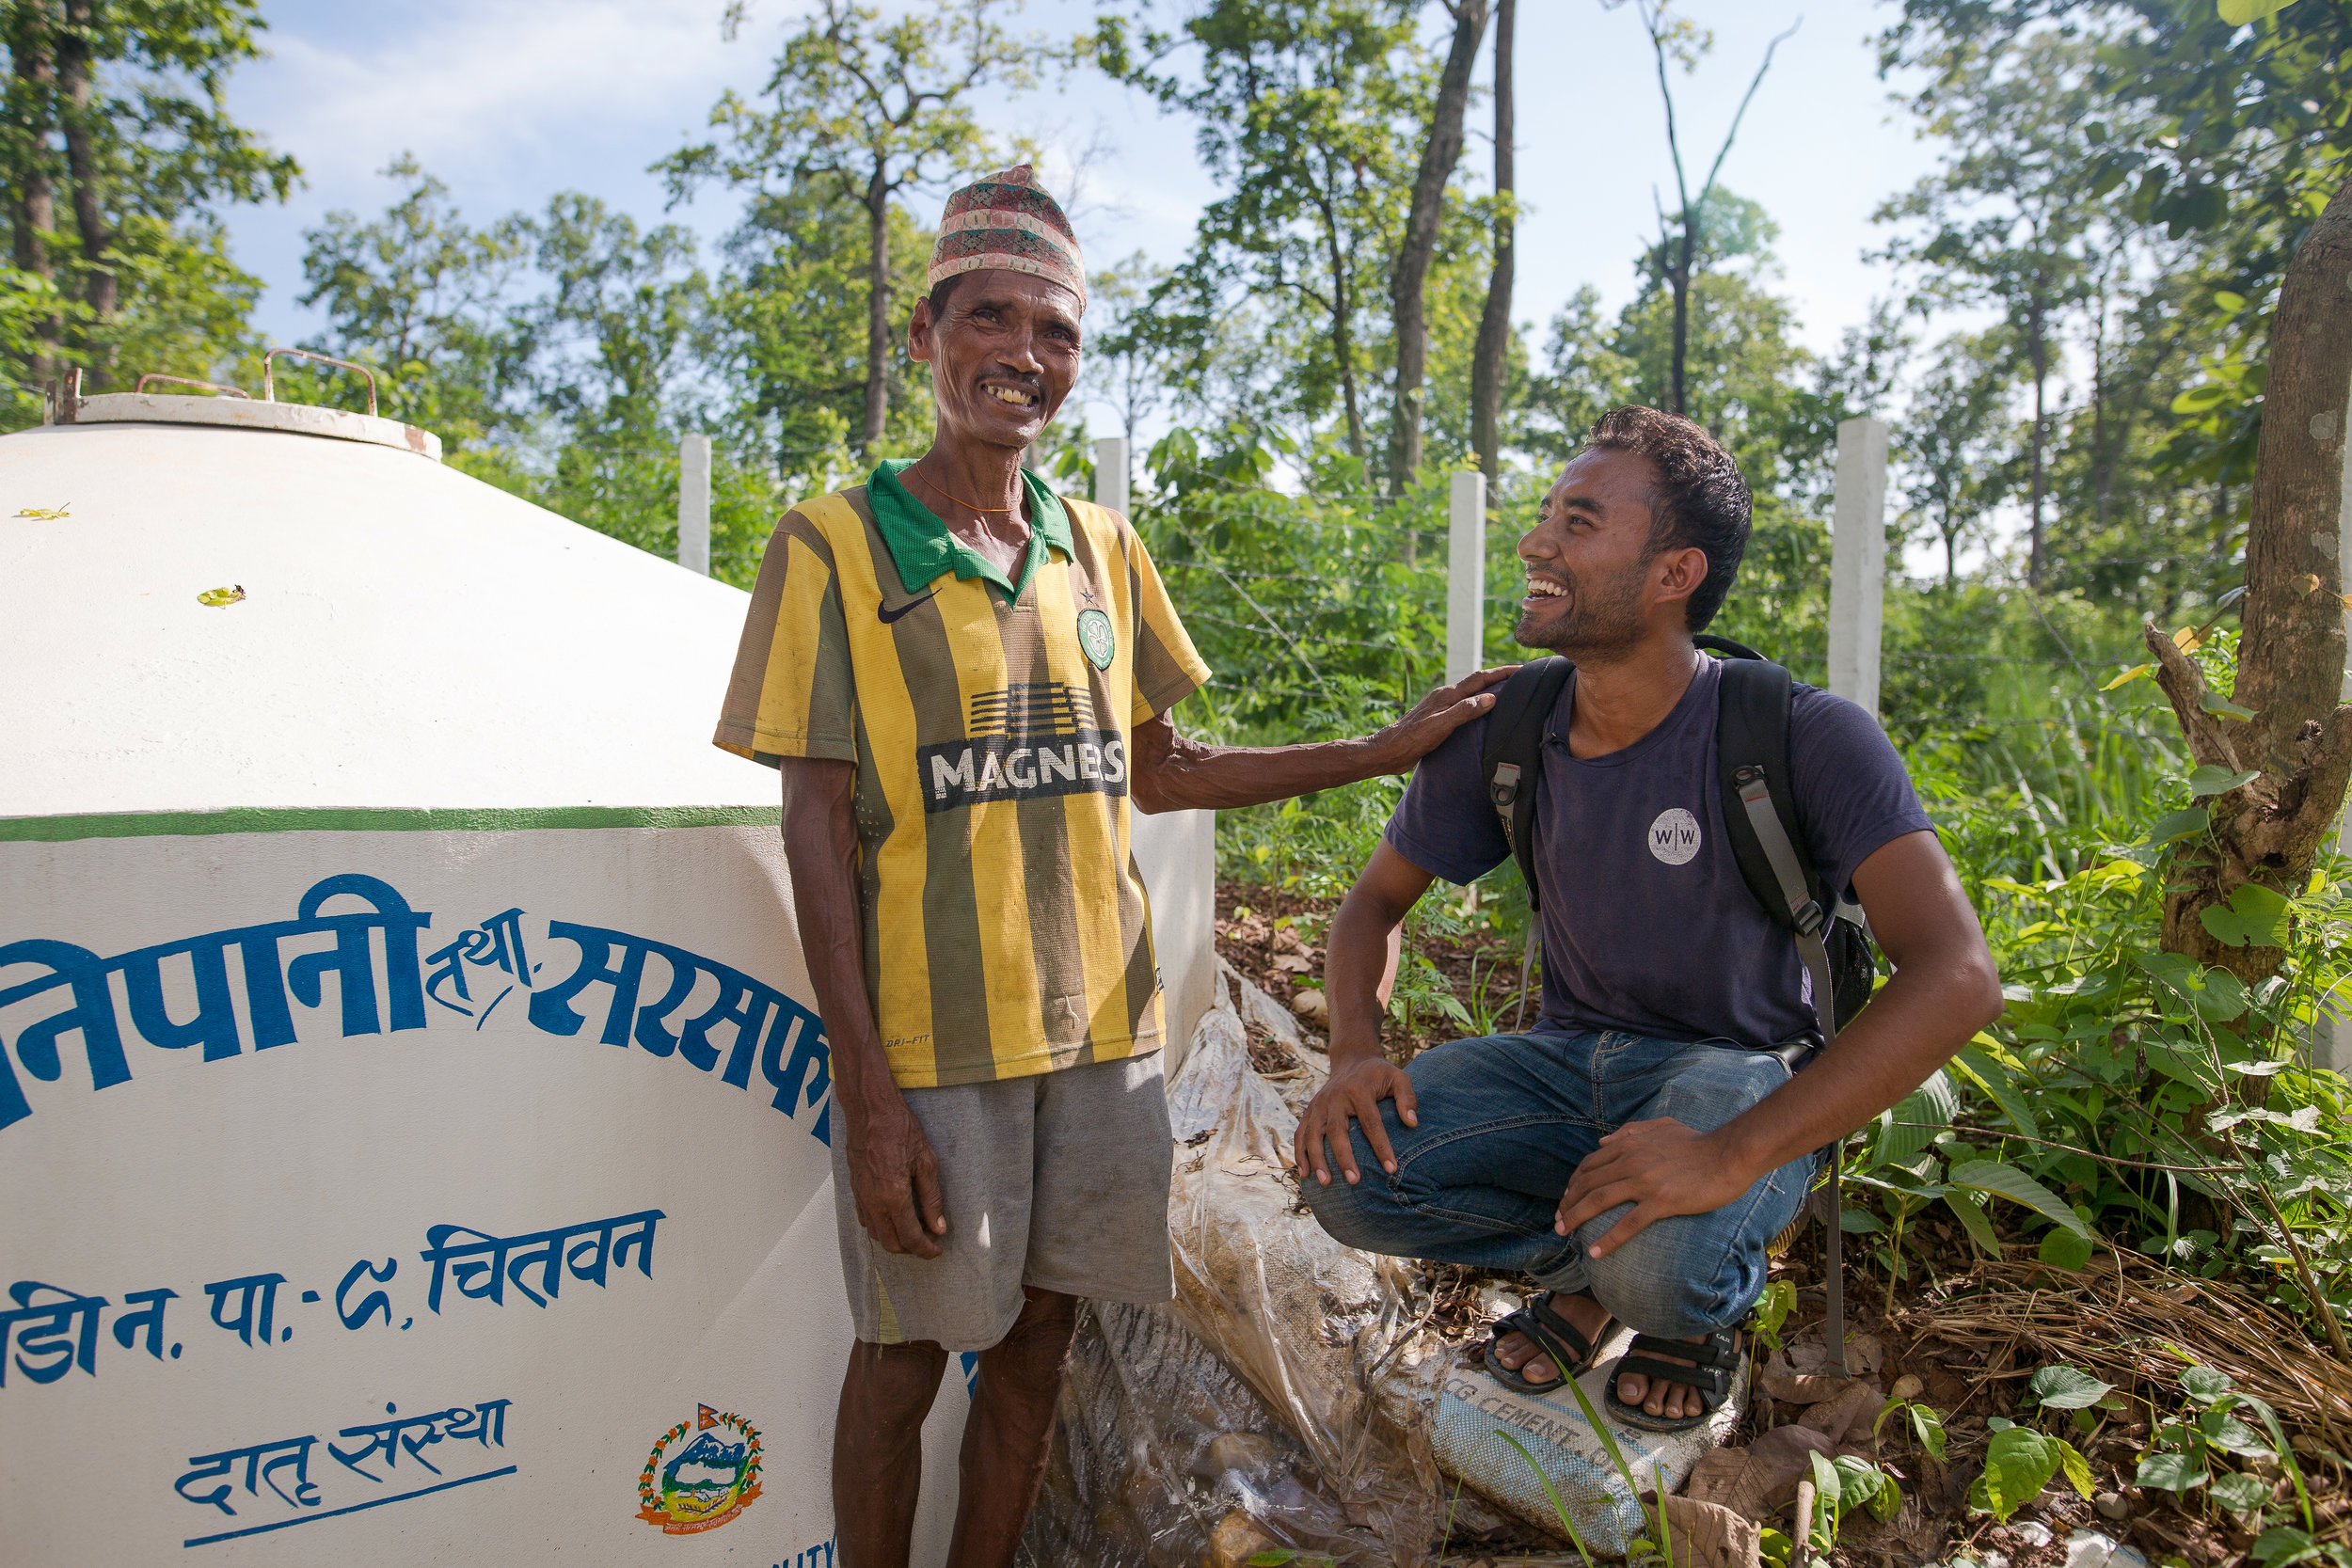 Abhishek talks with Sankur about the reservoir tank that stores water for the whole community.